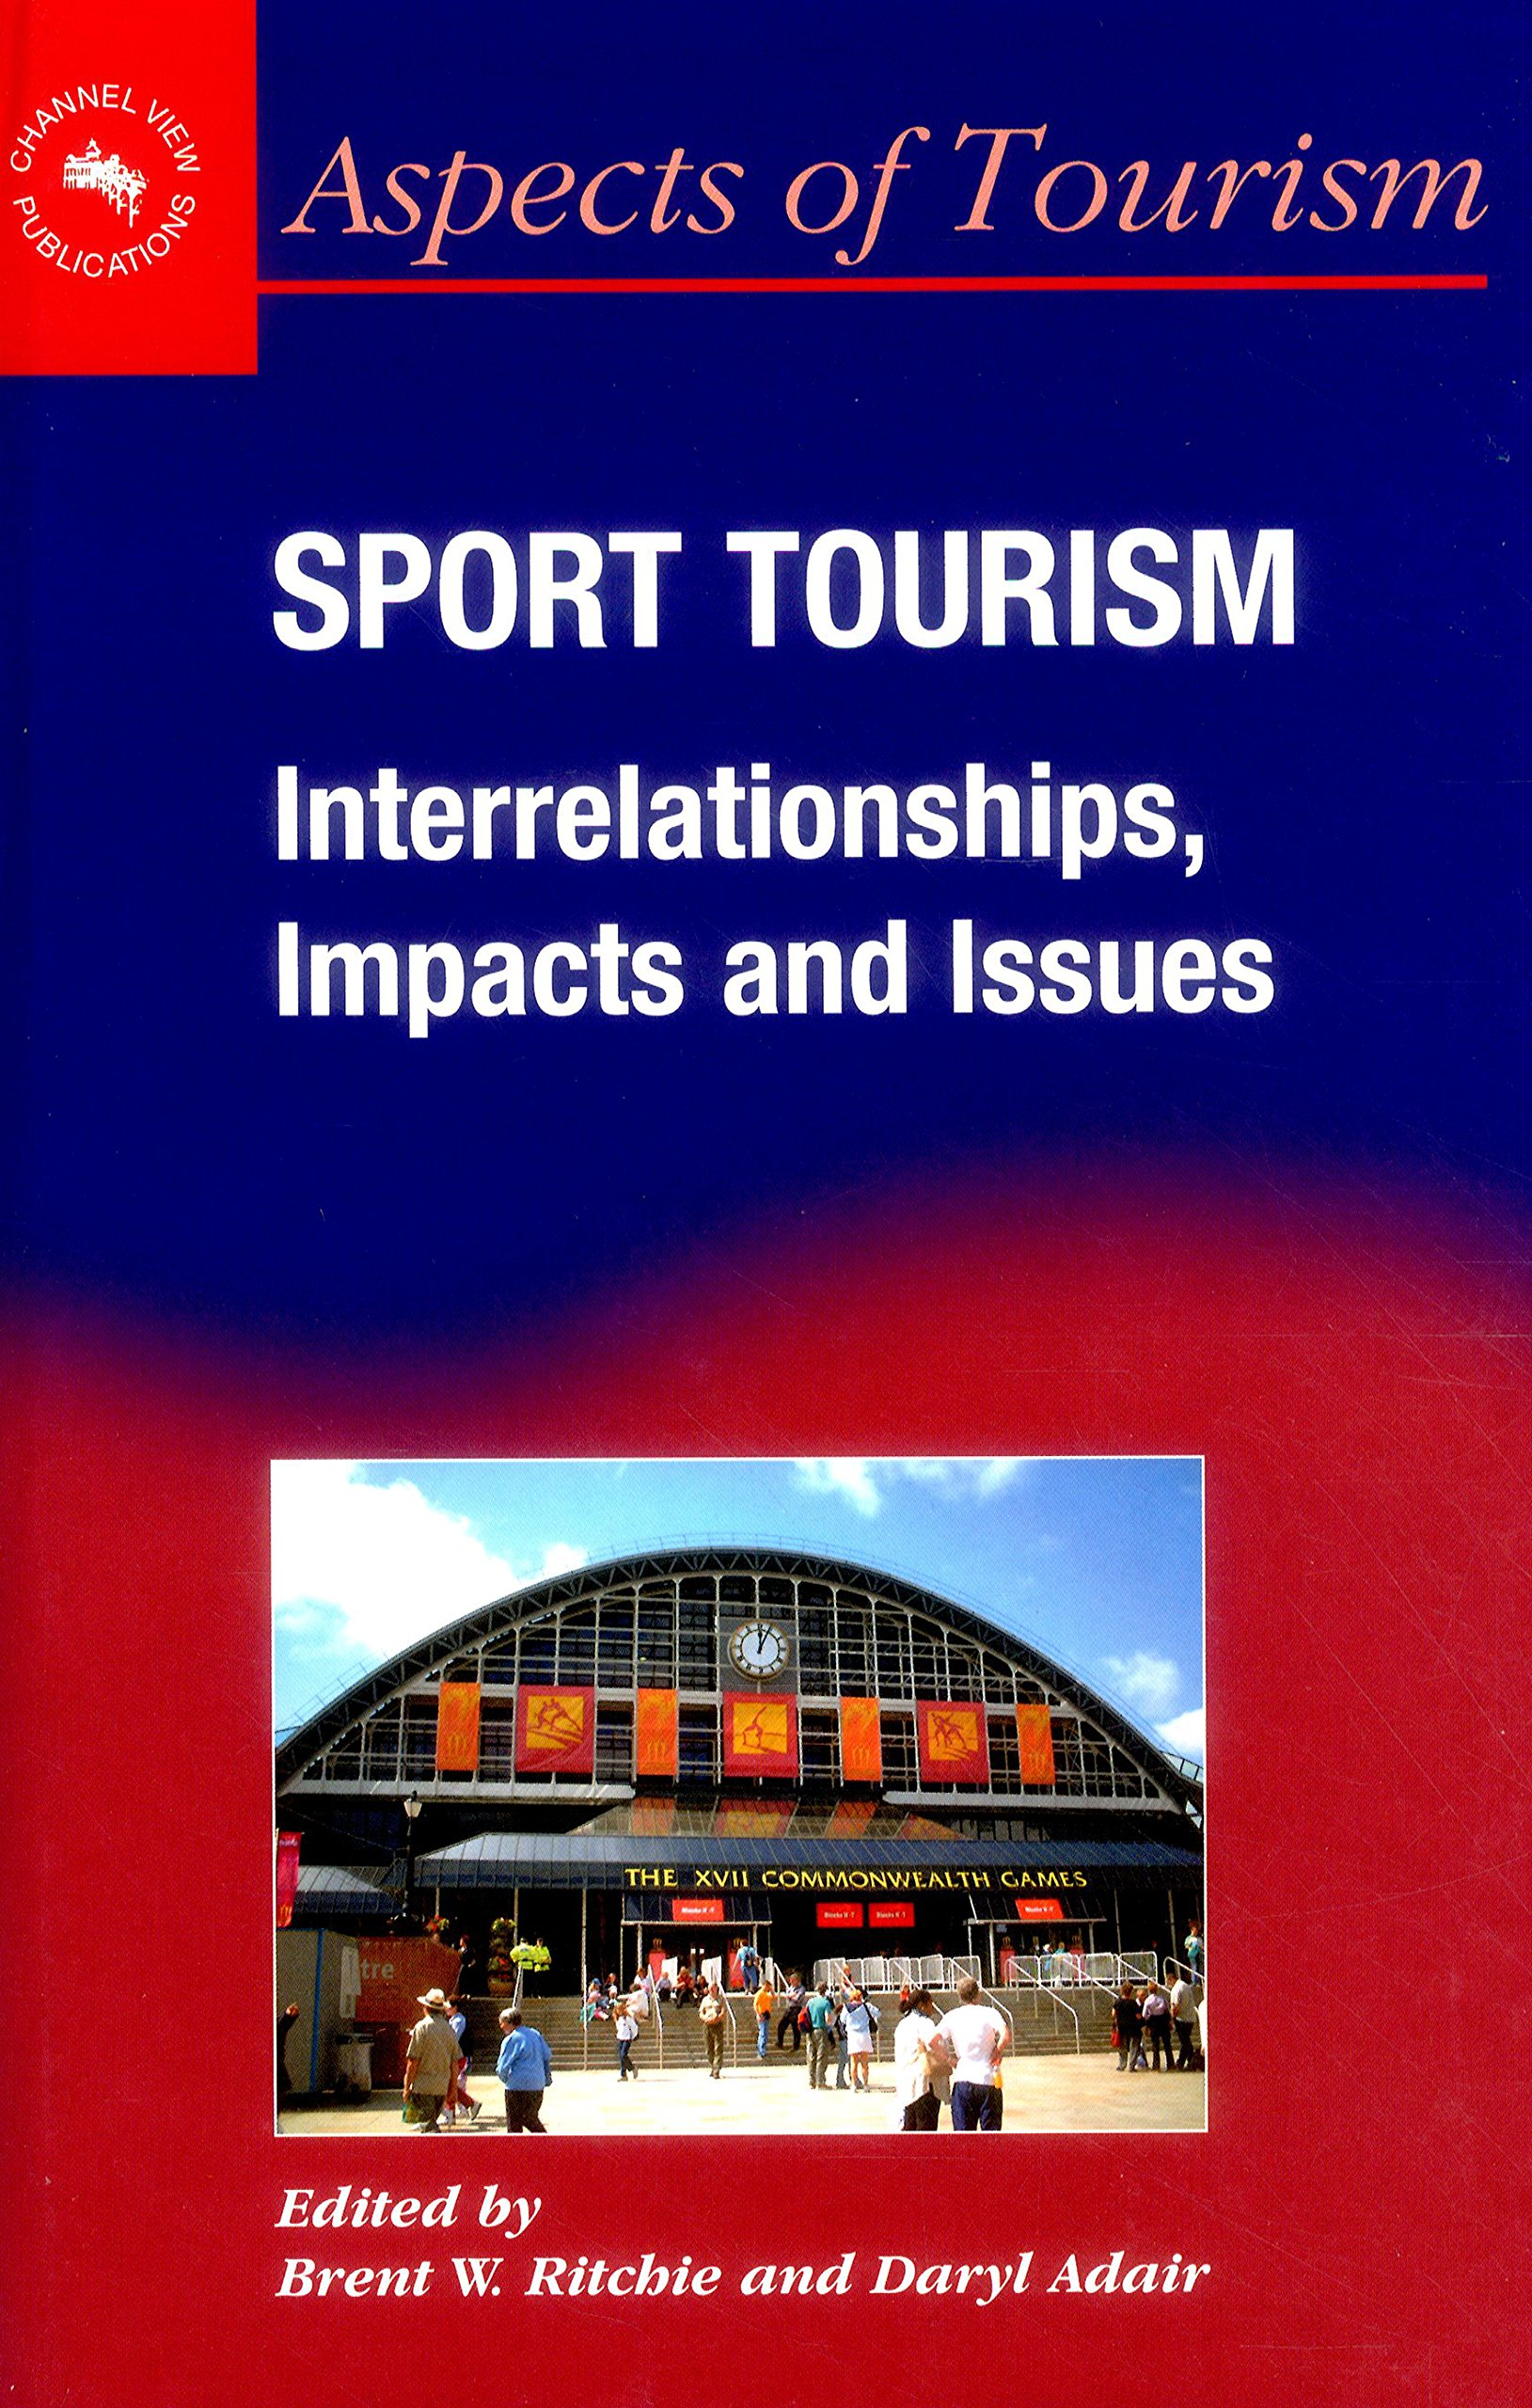 Download Sport Tourism: Interrelationships, Impacts and Issues (Aspects of Tourism) pdf